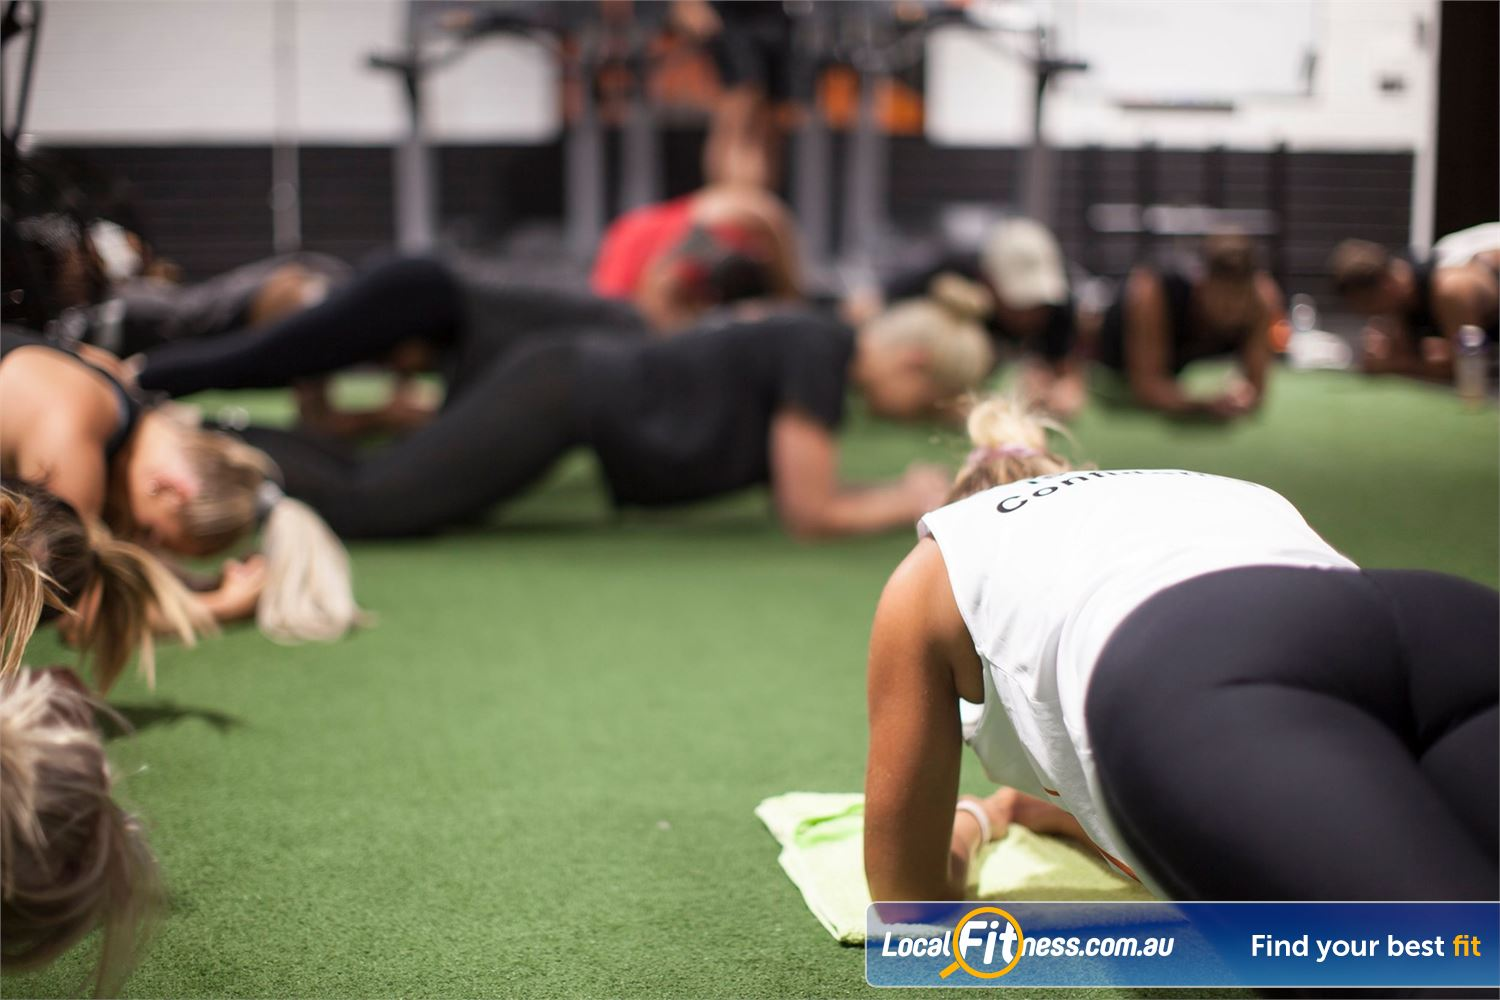 The Body Factory Near Dolans Bay Sweat it out and burn body fat with our Caringbah HIIT gym classes.